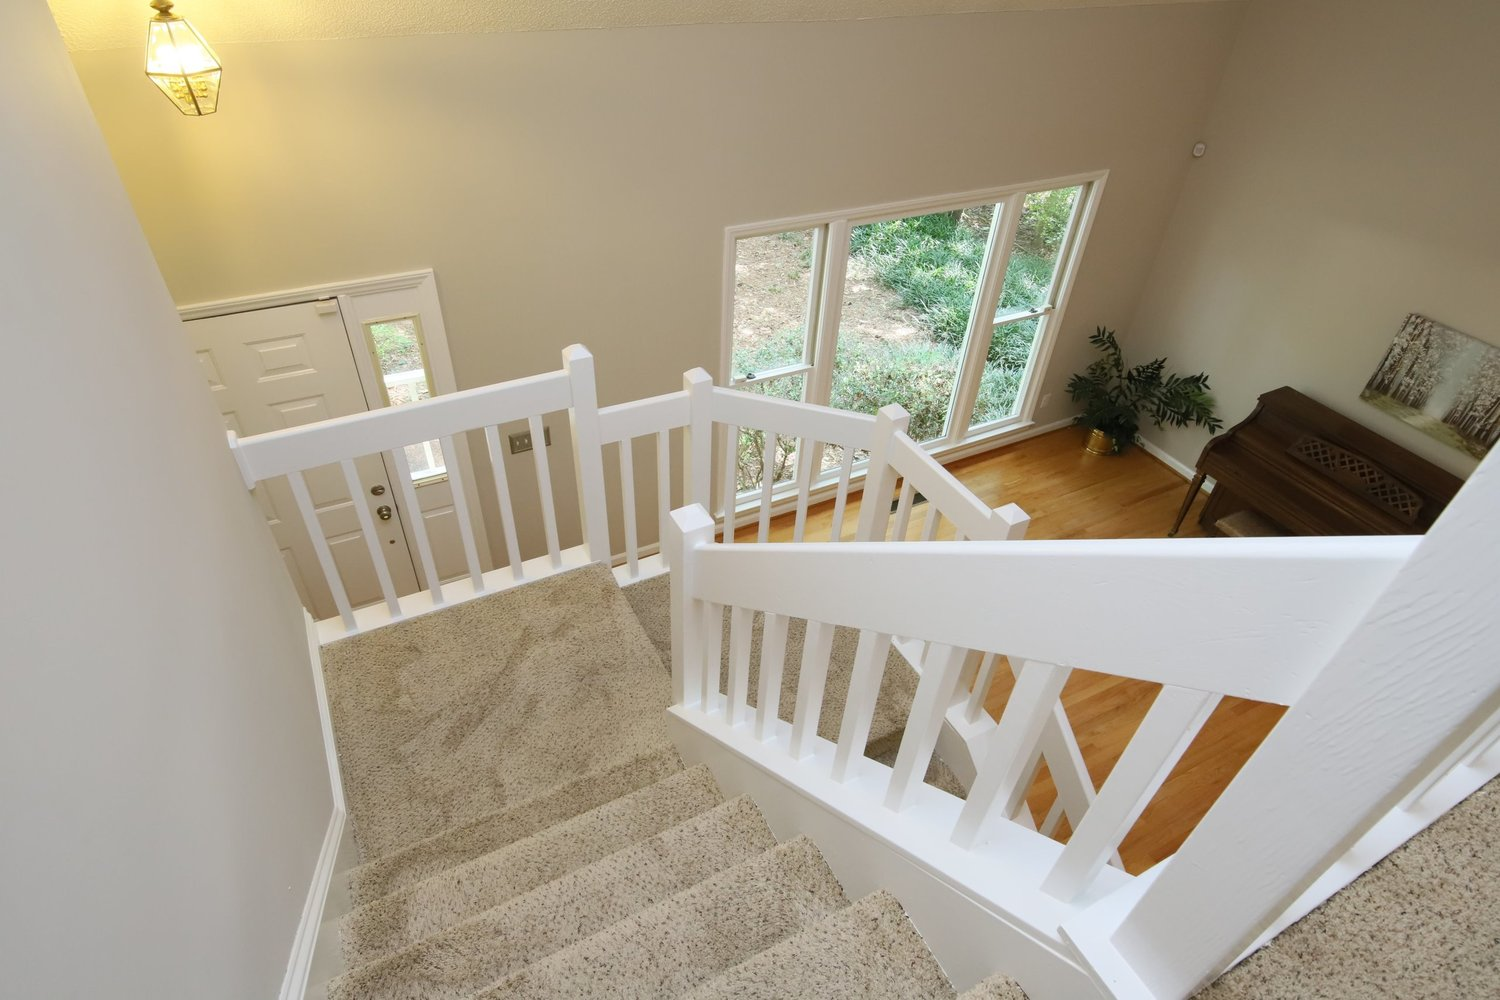 21staircase